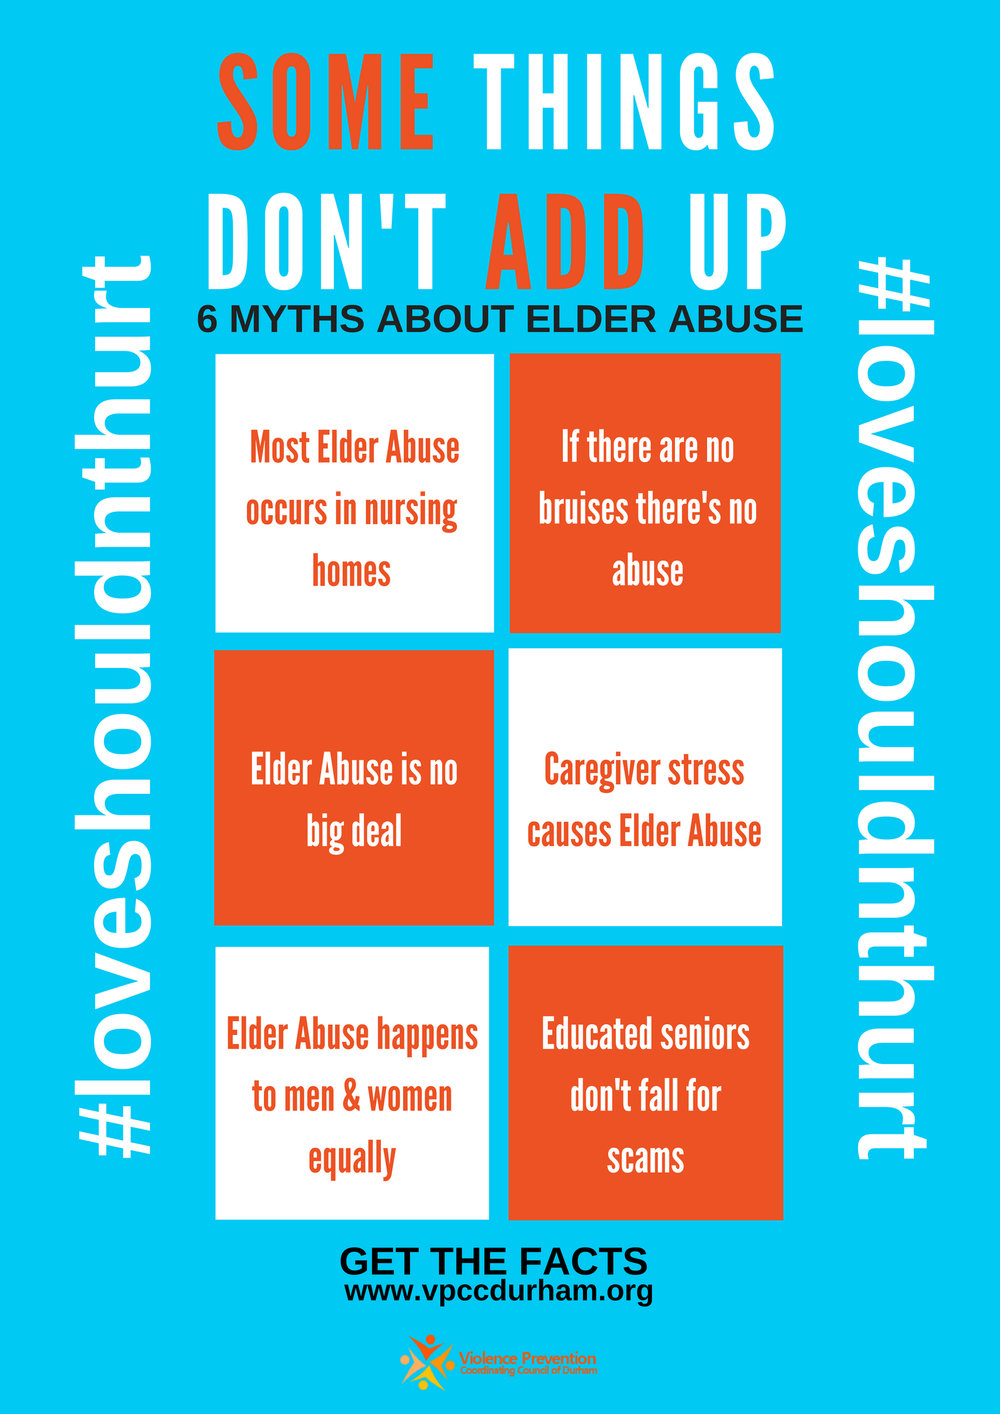 Elder Abuse Myths.jpg